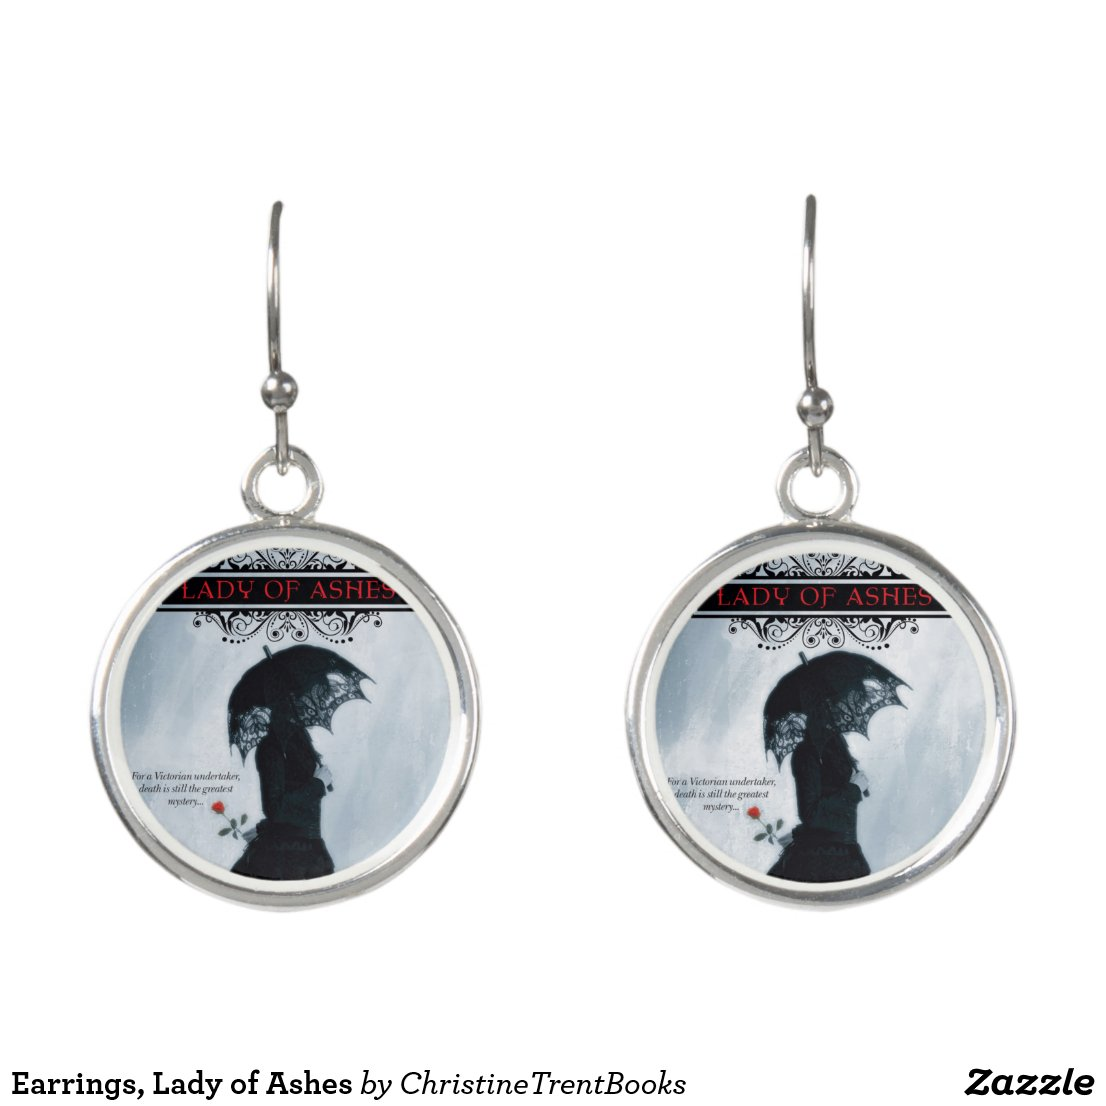 Earrings, Lady of Ashes Earrings